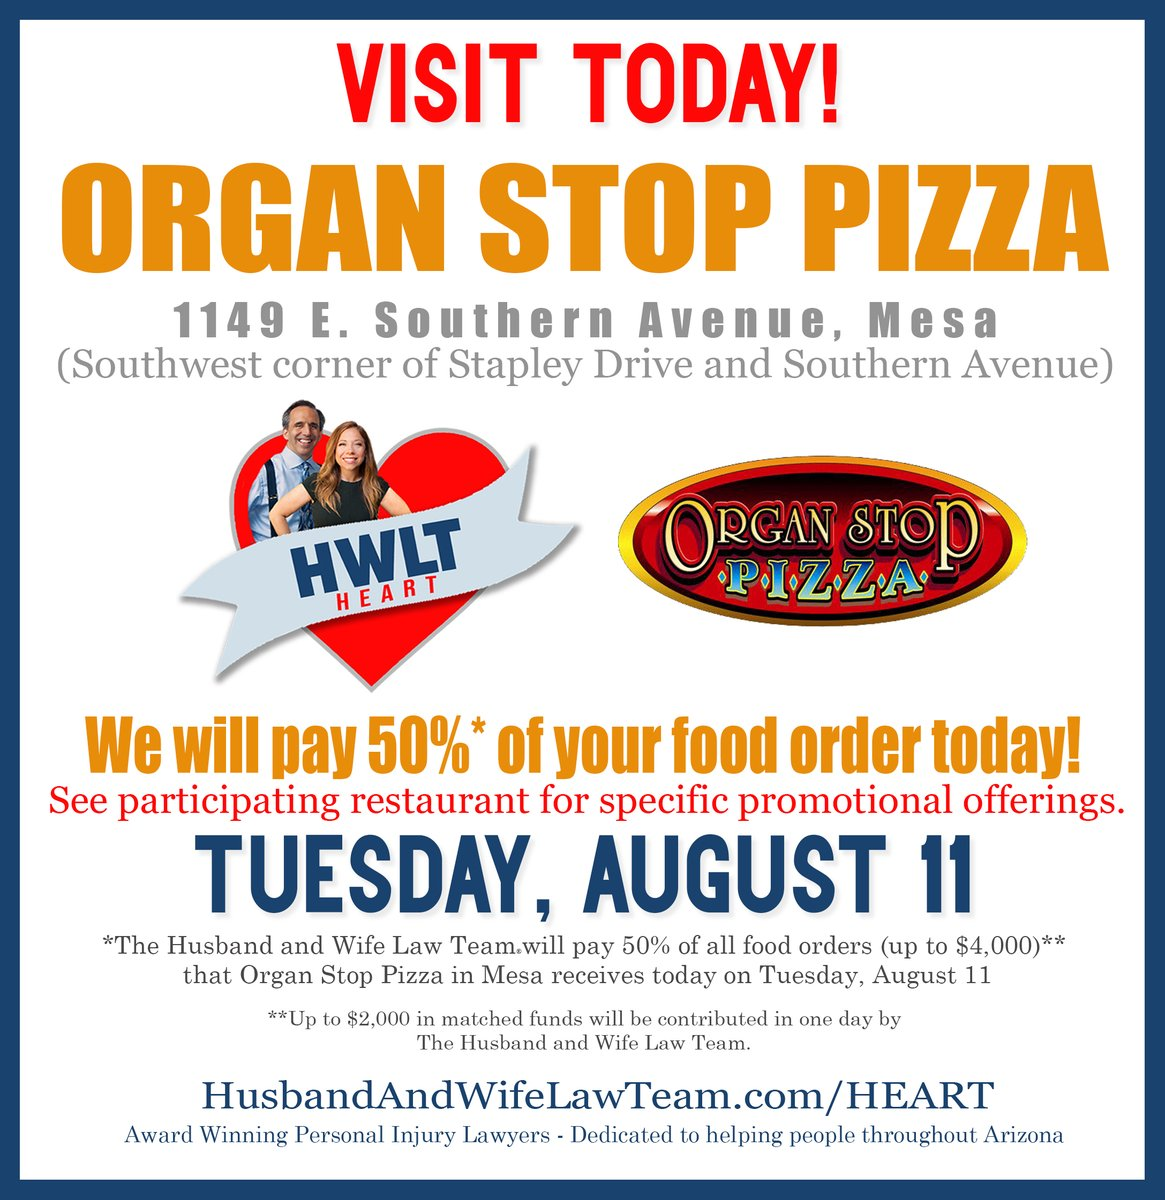 Our HEART Campaign is coming to @OrganStopPizza tonight and we will be paying for 50% of your food order!   1149 E. Southern Avenue, Mesa  5:00pm-9:00pm 480-513-5700 http://www.OrganStopPizza.com Cash/check only. Please see restaurant for specific promotional details.pic.twitter.com/bo3fjrKfP2